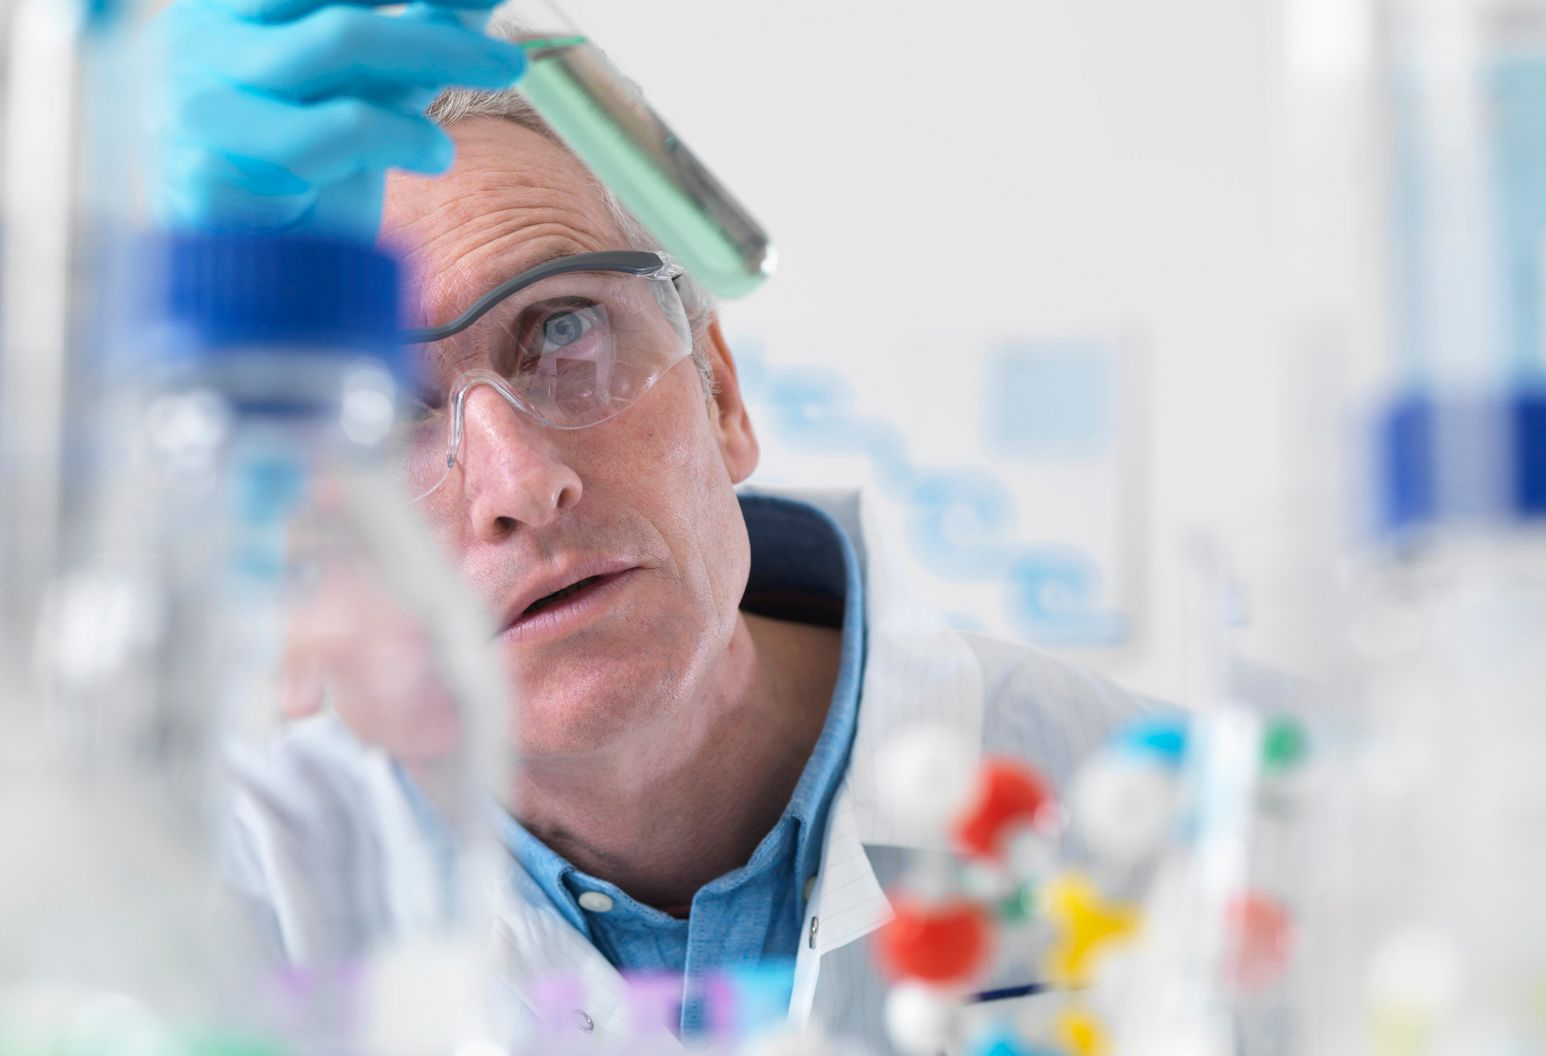 Man in a lab coat and safety goggles looking at a test tube speciment